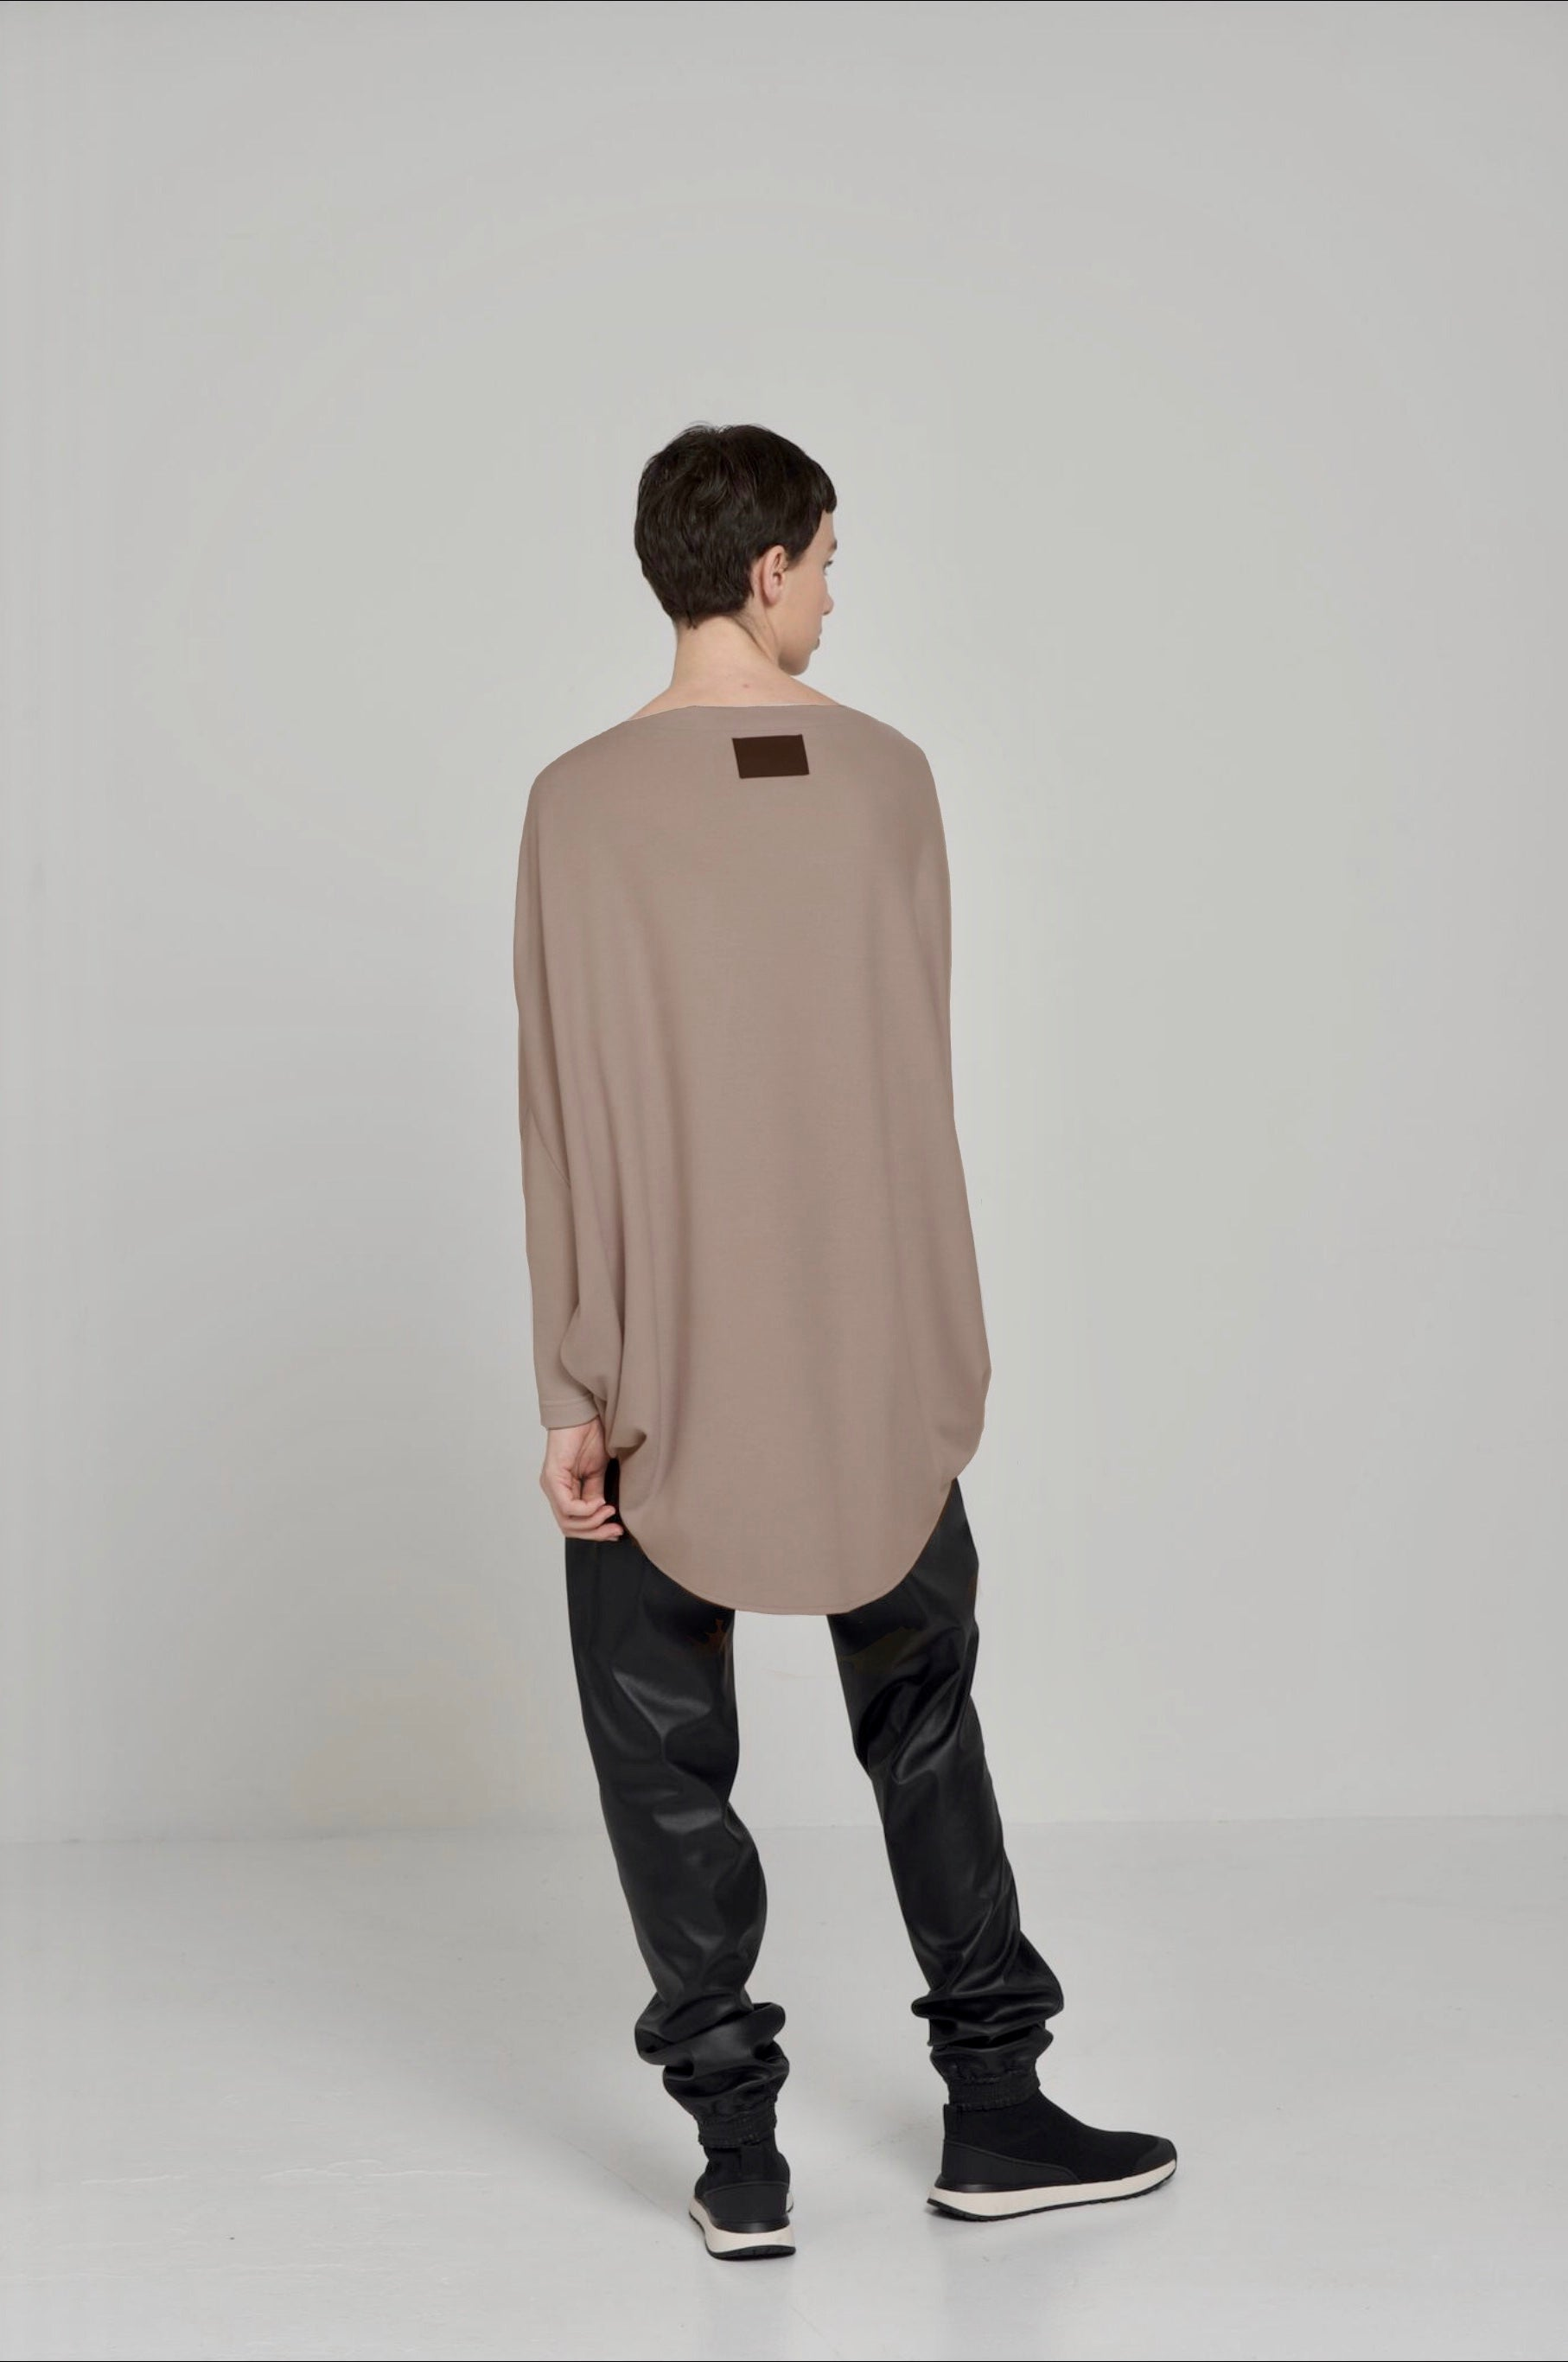 LUNA TOP LONG SLEEVE / DIAMOND LUMINARY WOOL - C3 (4694583705679)